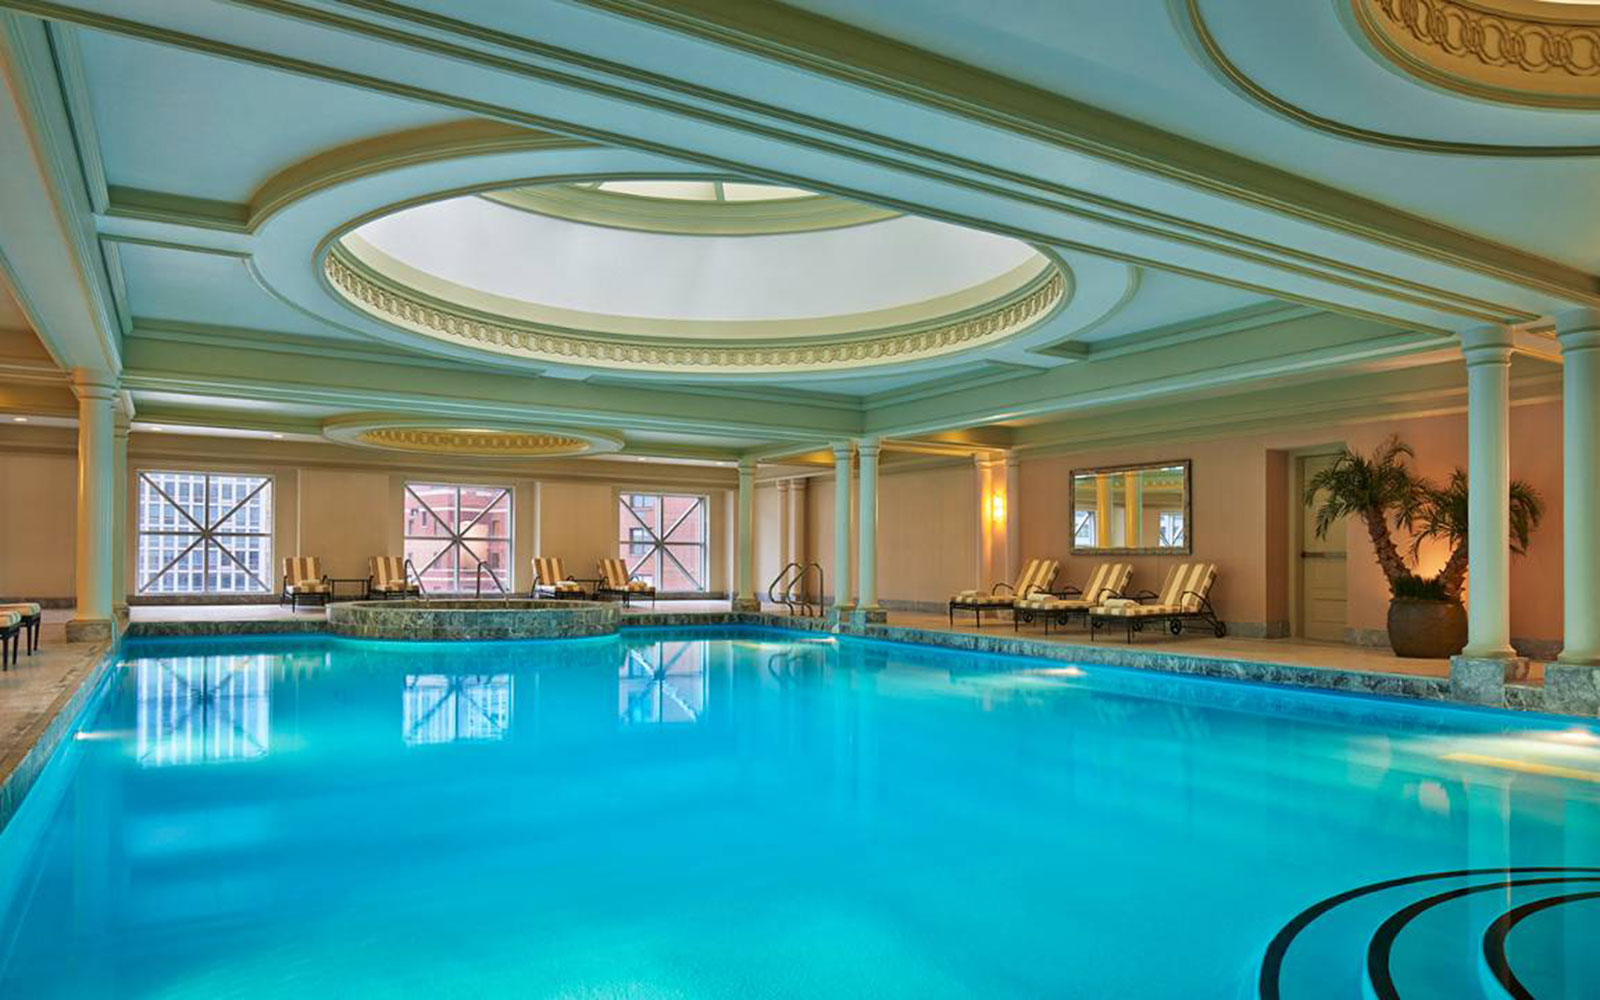 Hotel Pools For Non-Guests